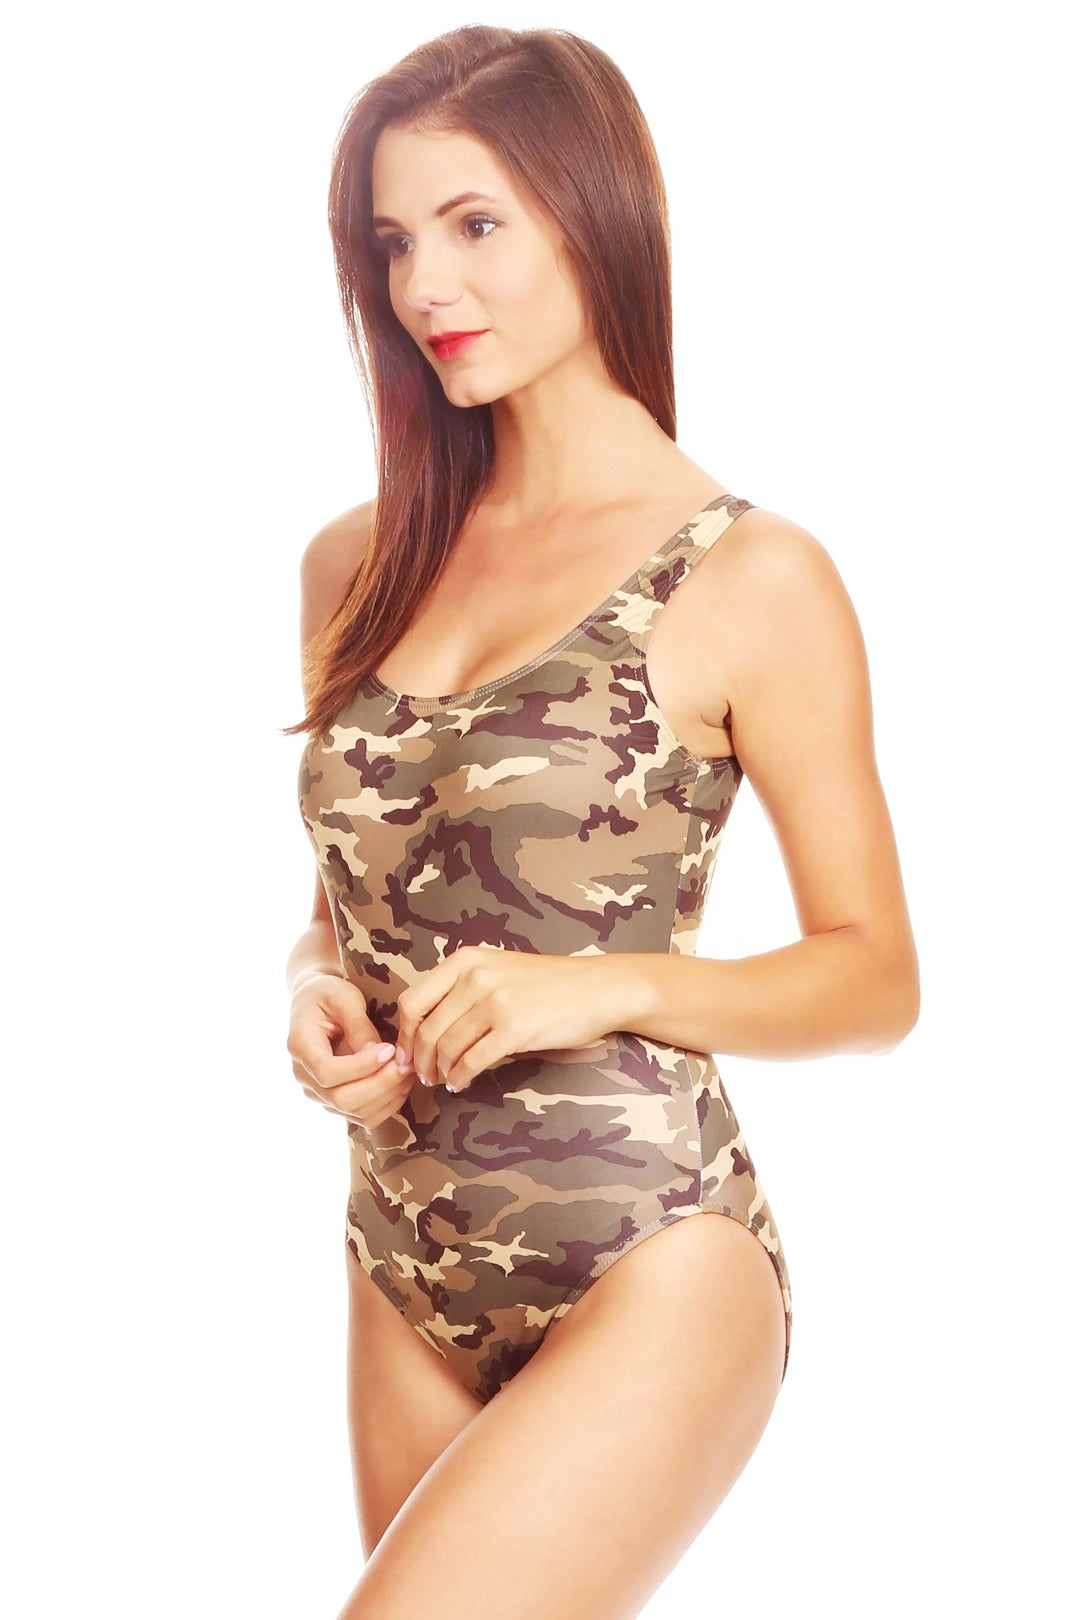 Women's One-piece Camo Bikini Is in Fashion Nowadays